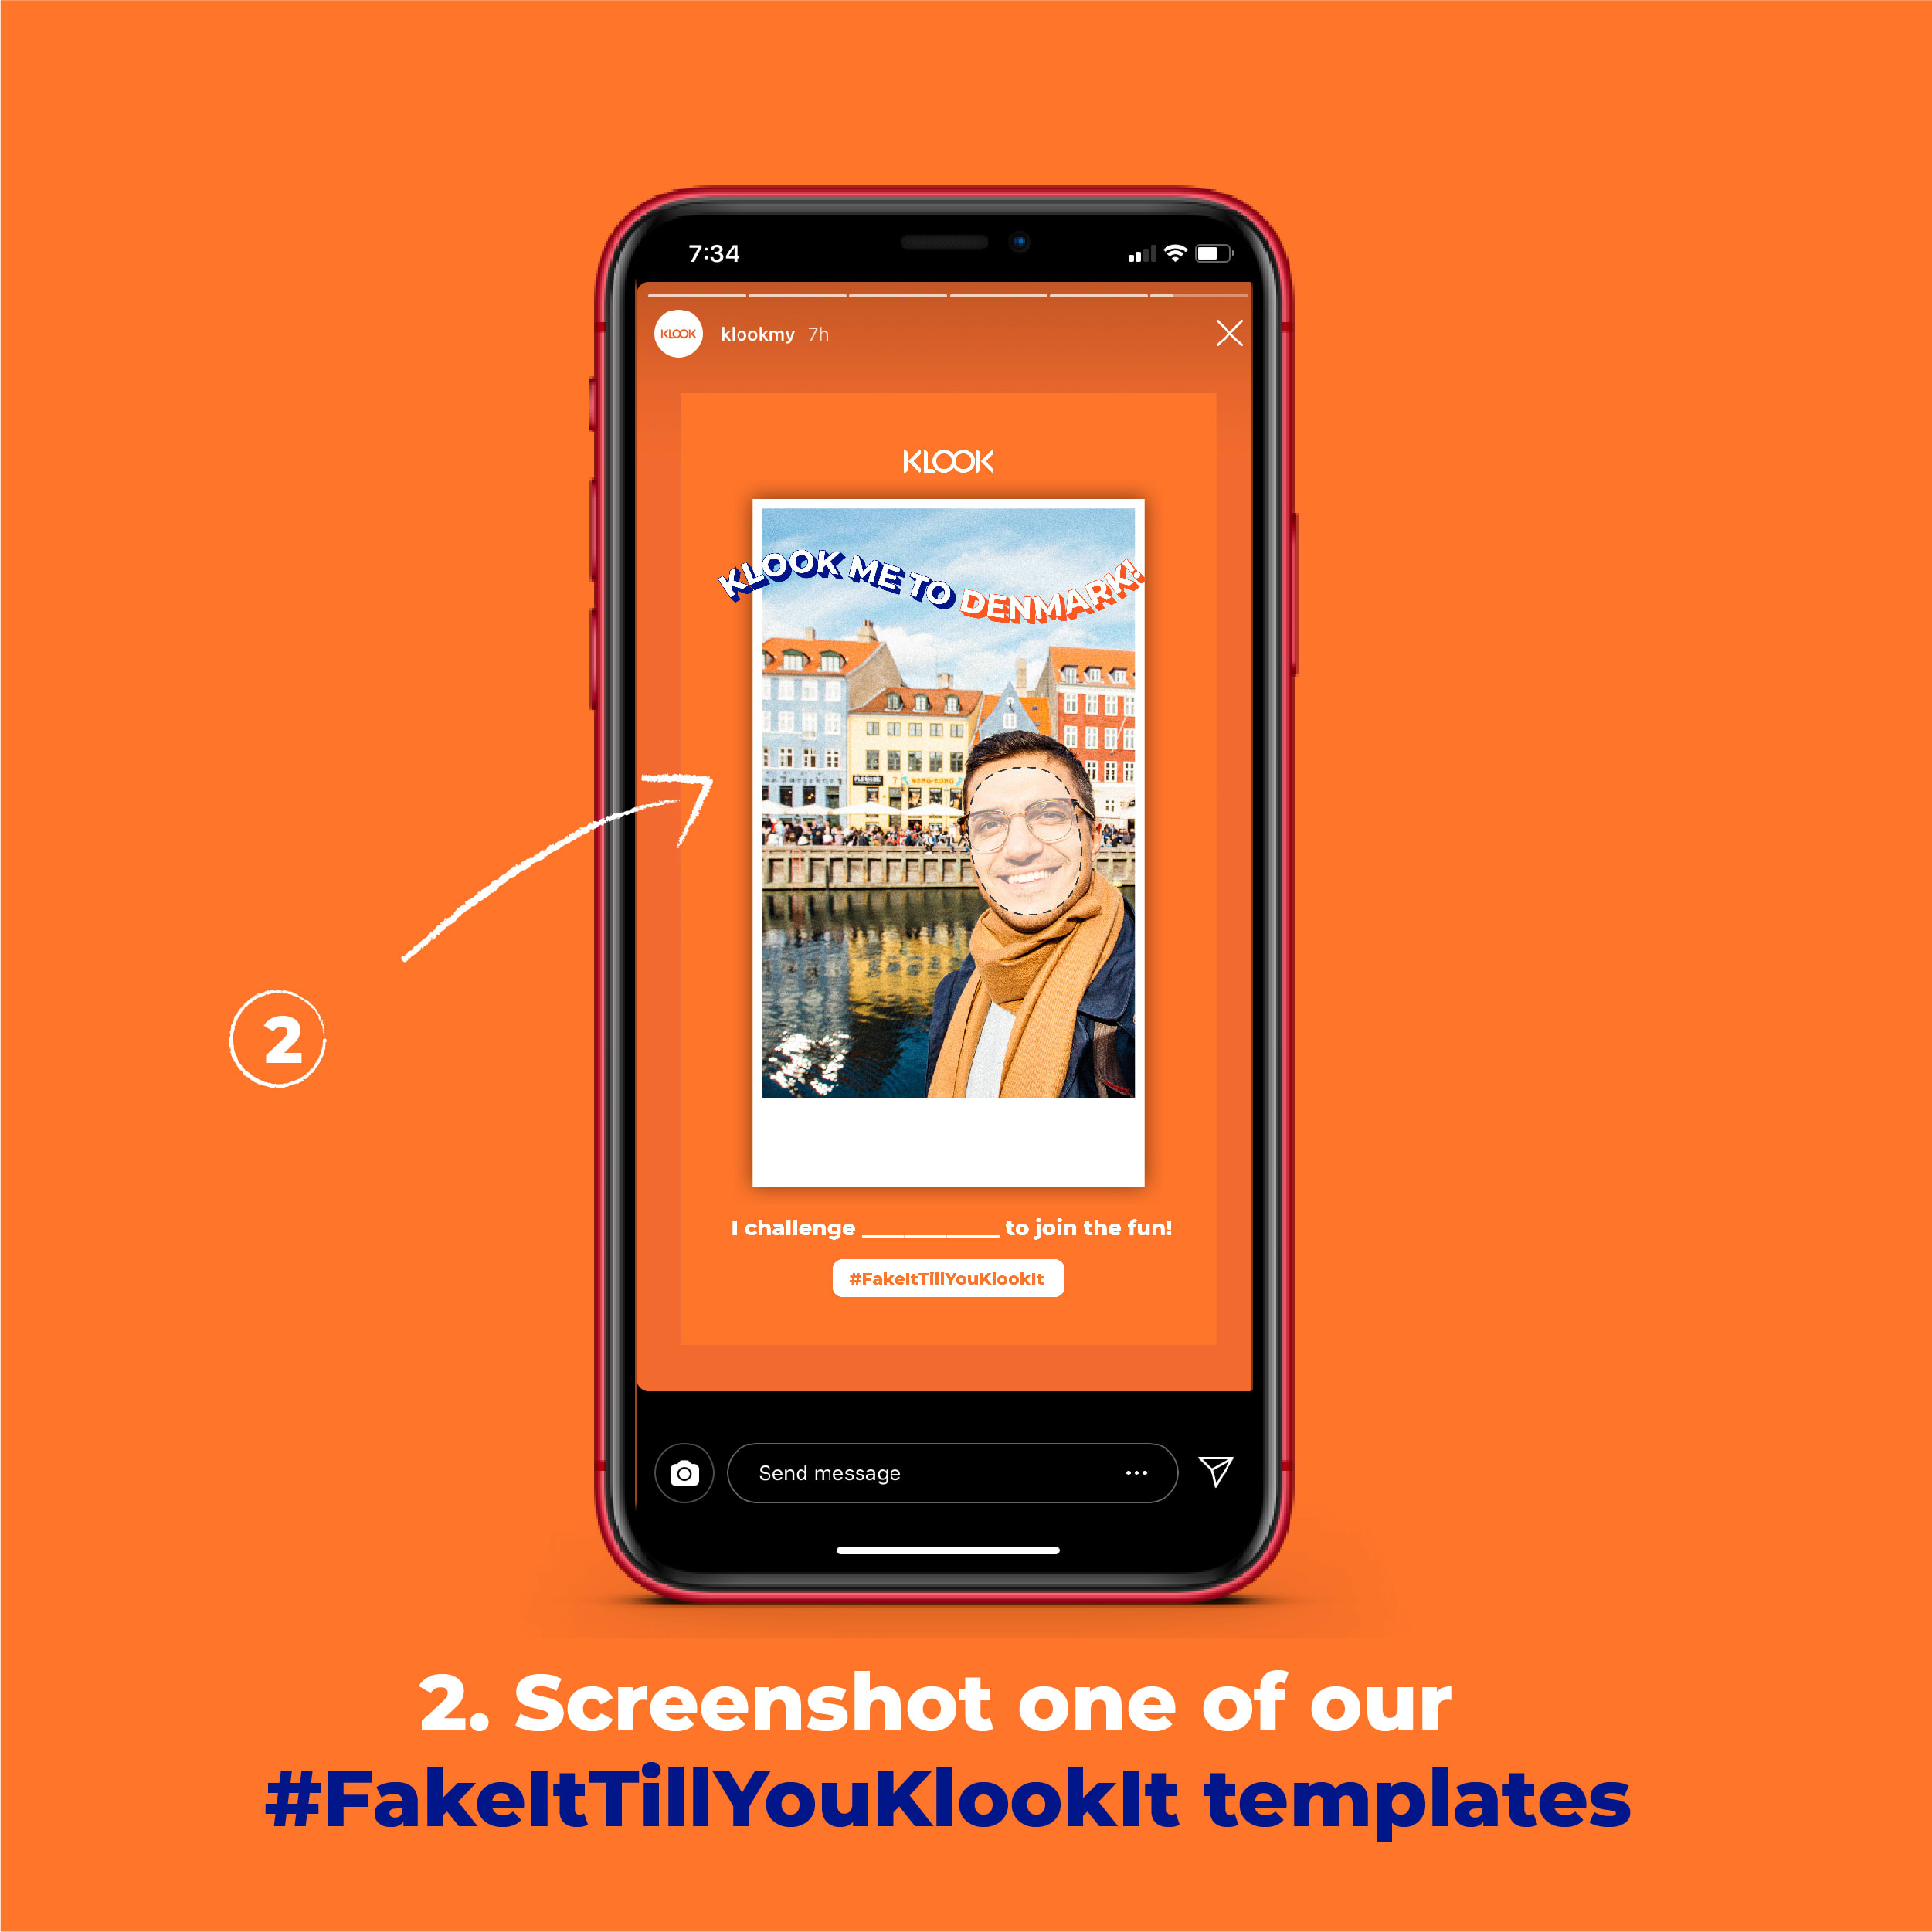 FakeItTillYouKlookIt - Post On IG Story To Win A FREE Trip